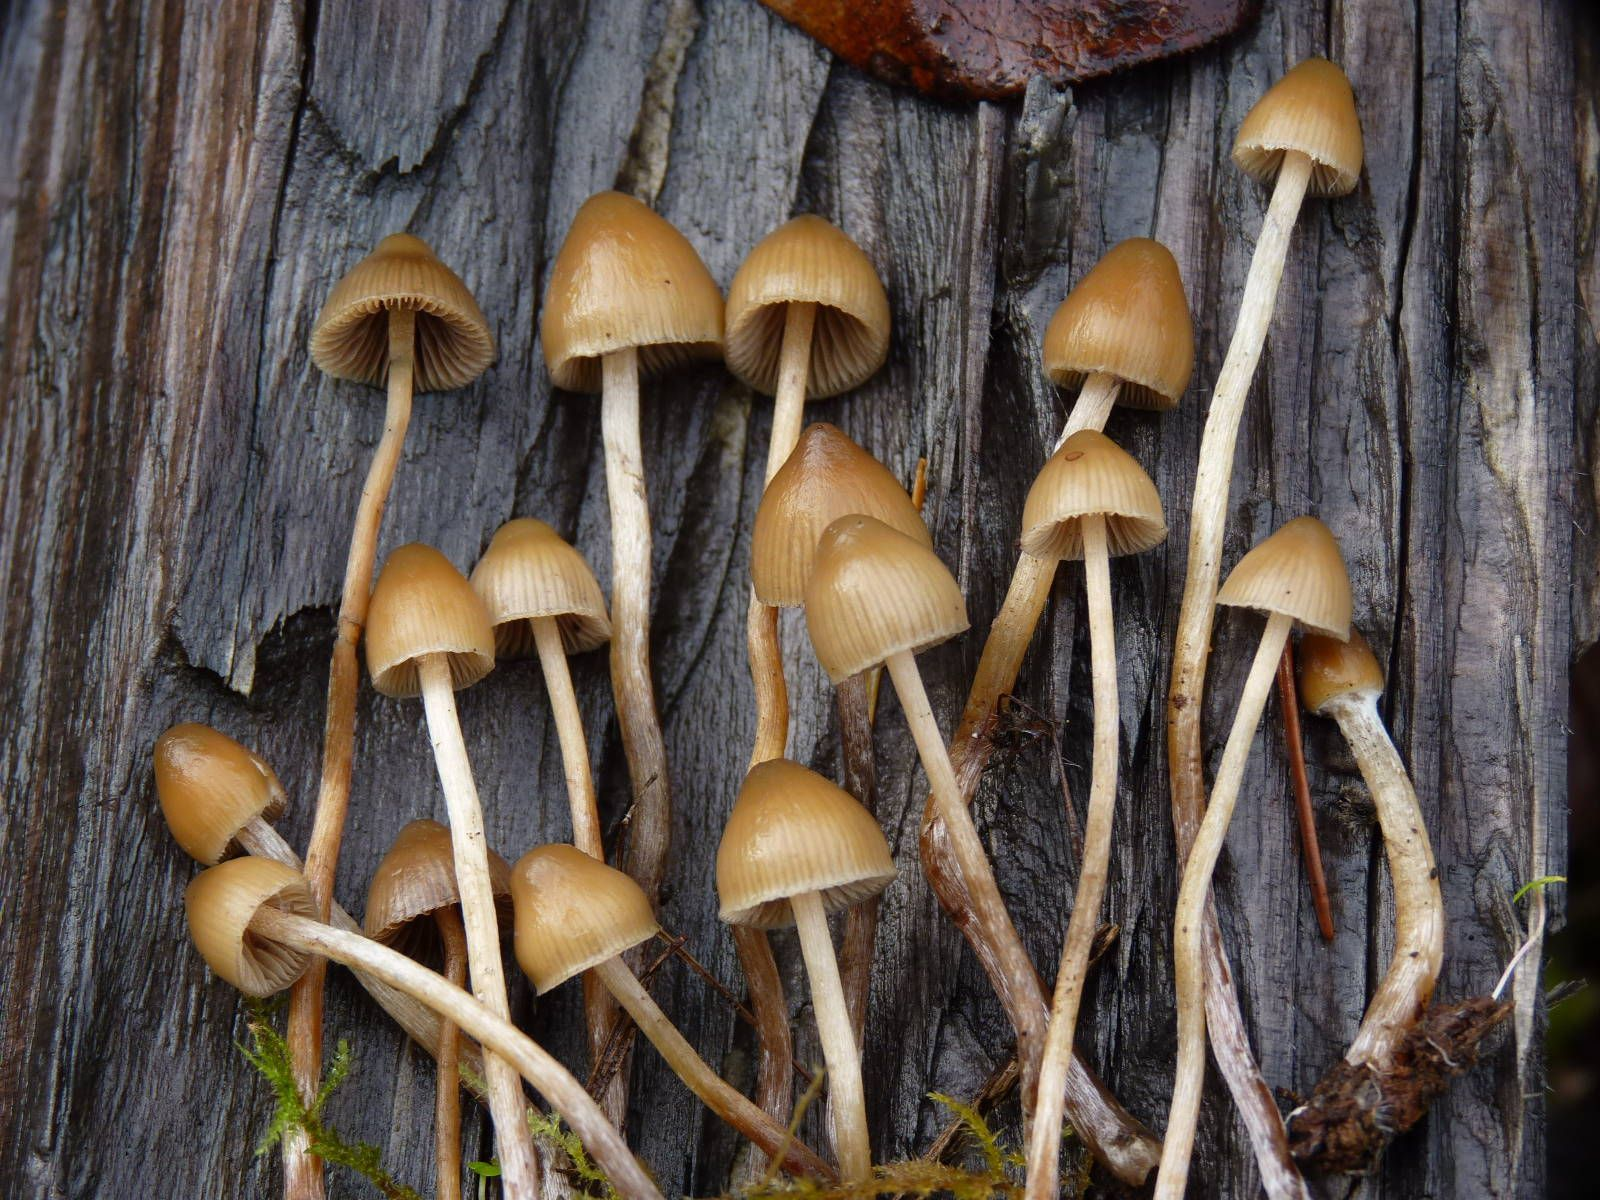 Psilocybe pelliculosa hunters please comment - Mushroom Hunting and